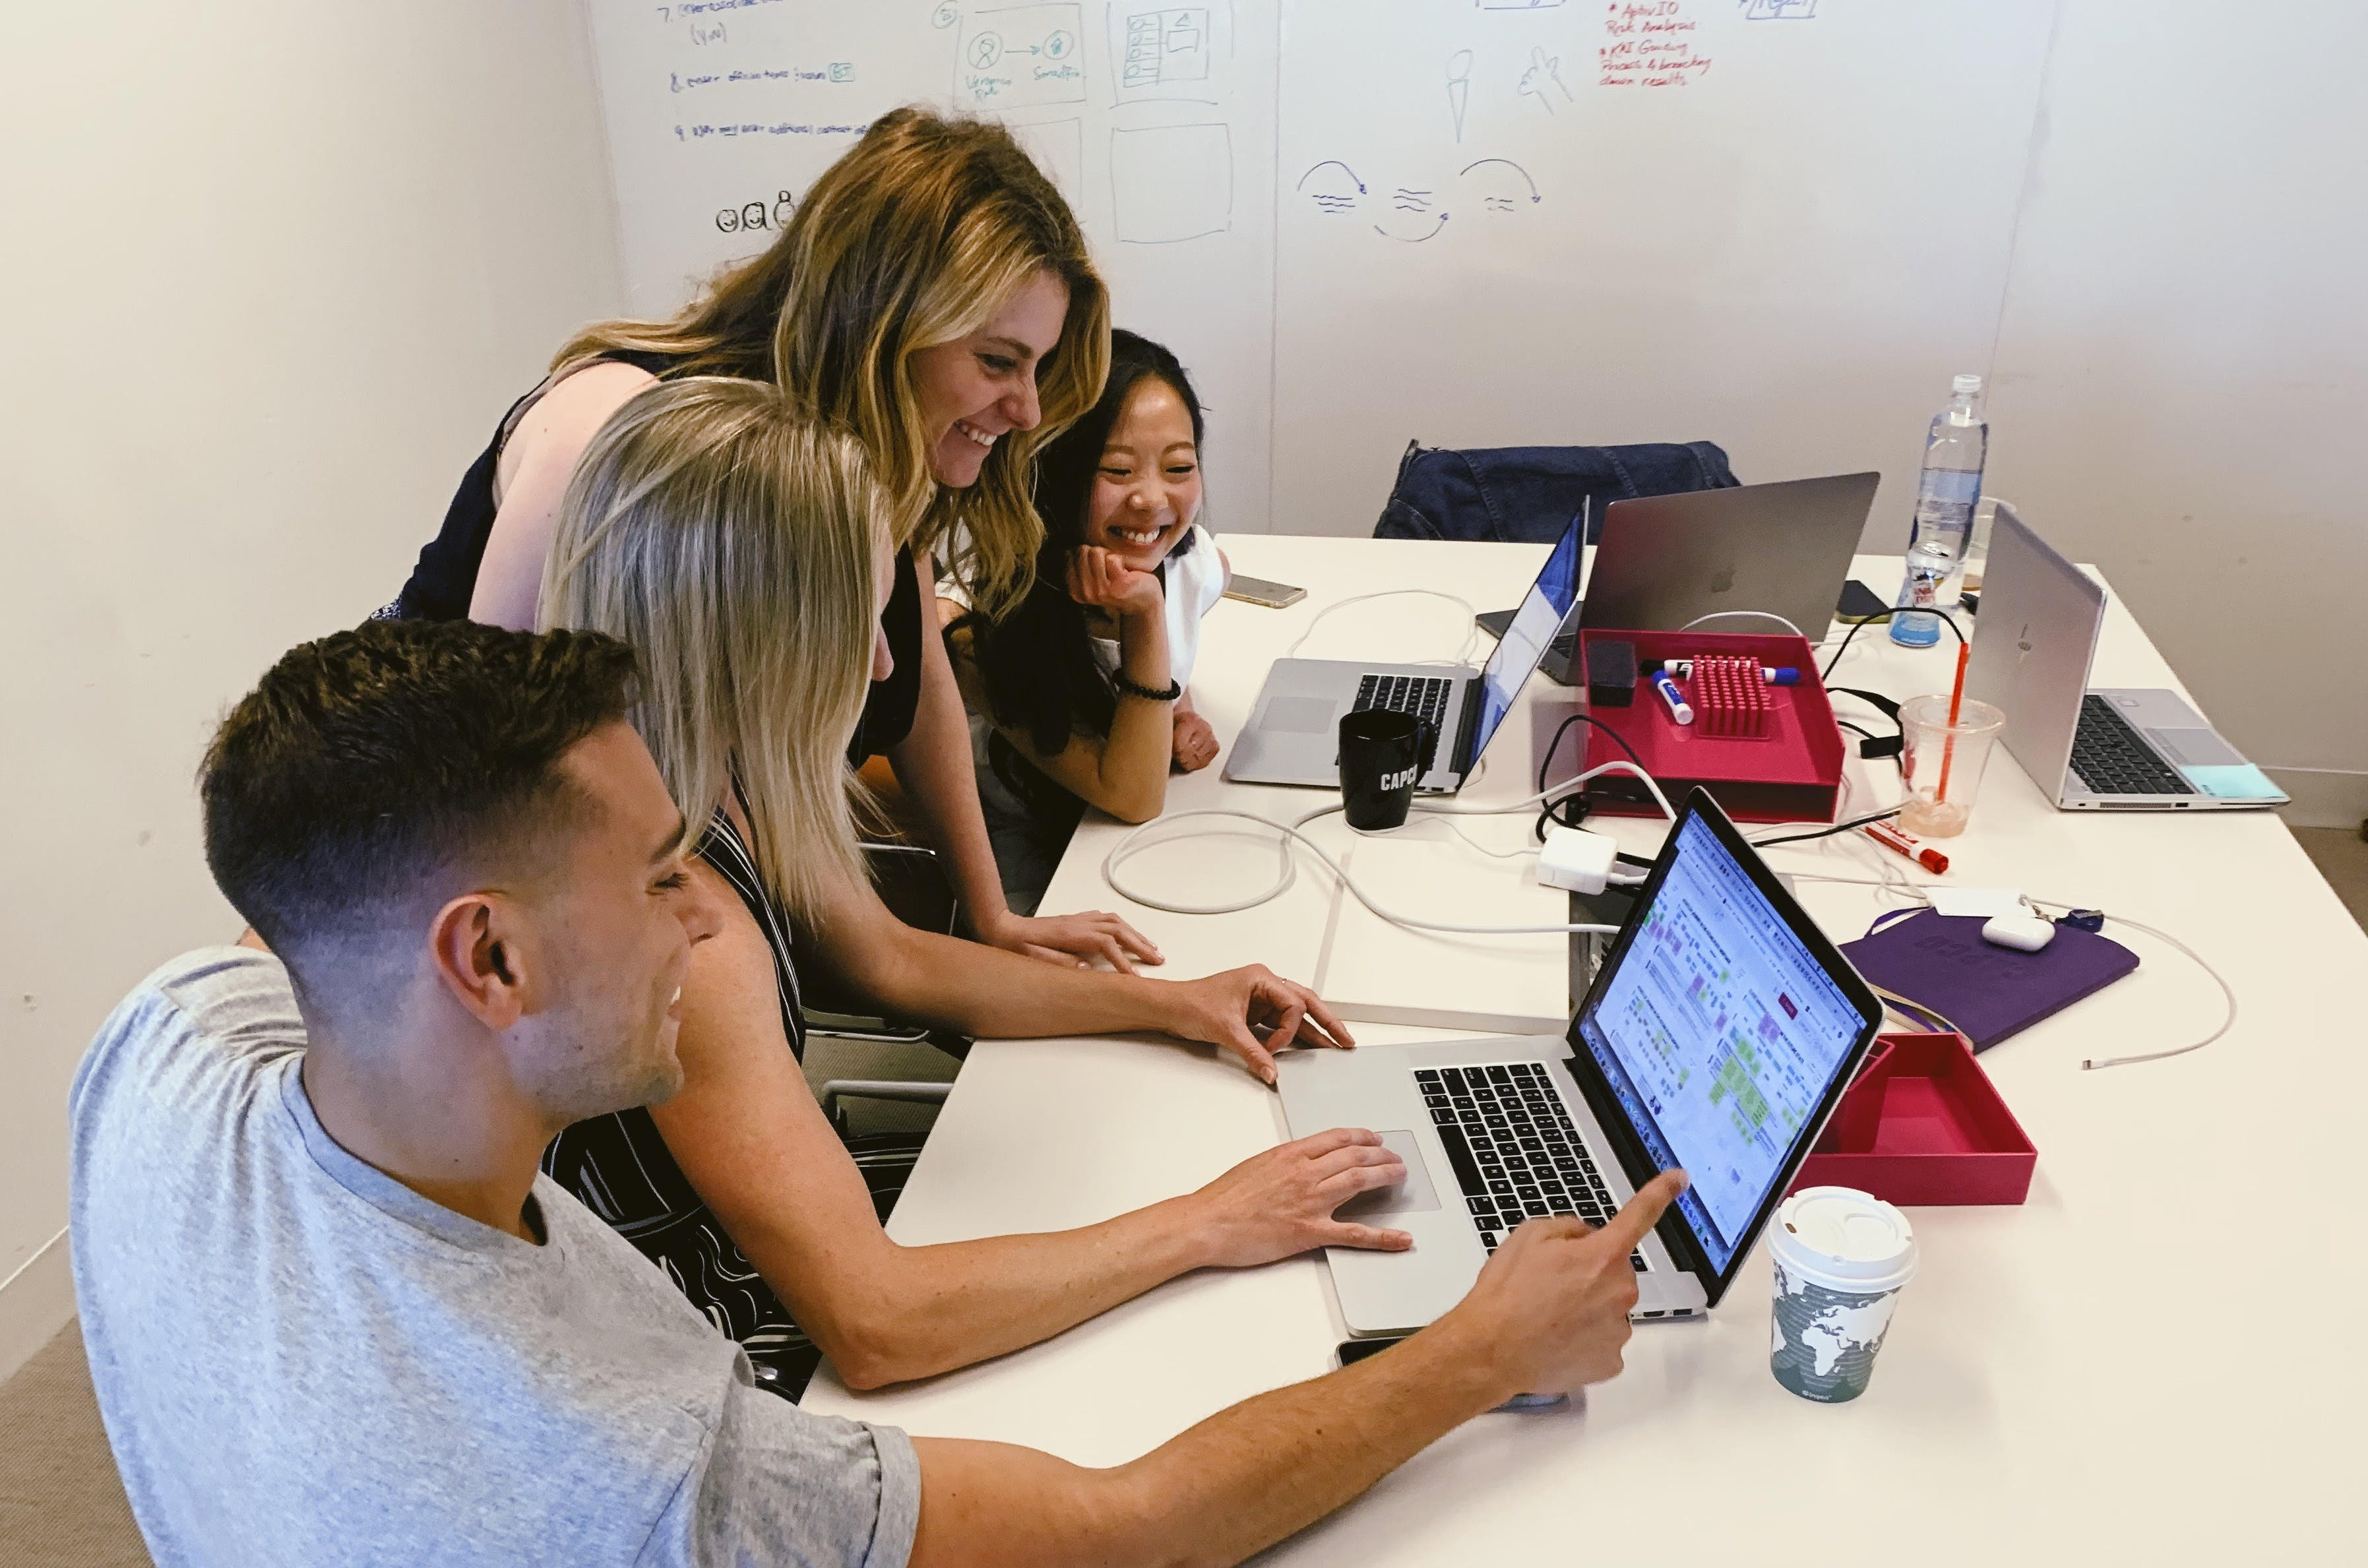 Capco's Design Thinking Project Lead Aoife Hogan with her team (Daniel LaBarbera, Zoe Yang, and MAdeline Kossakowski).